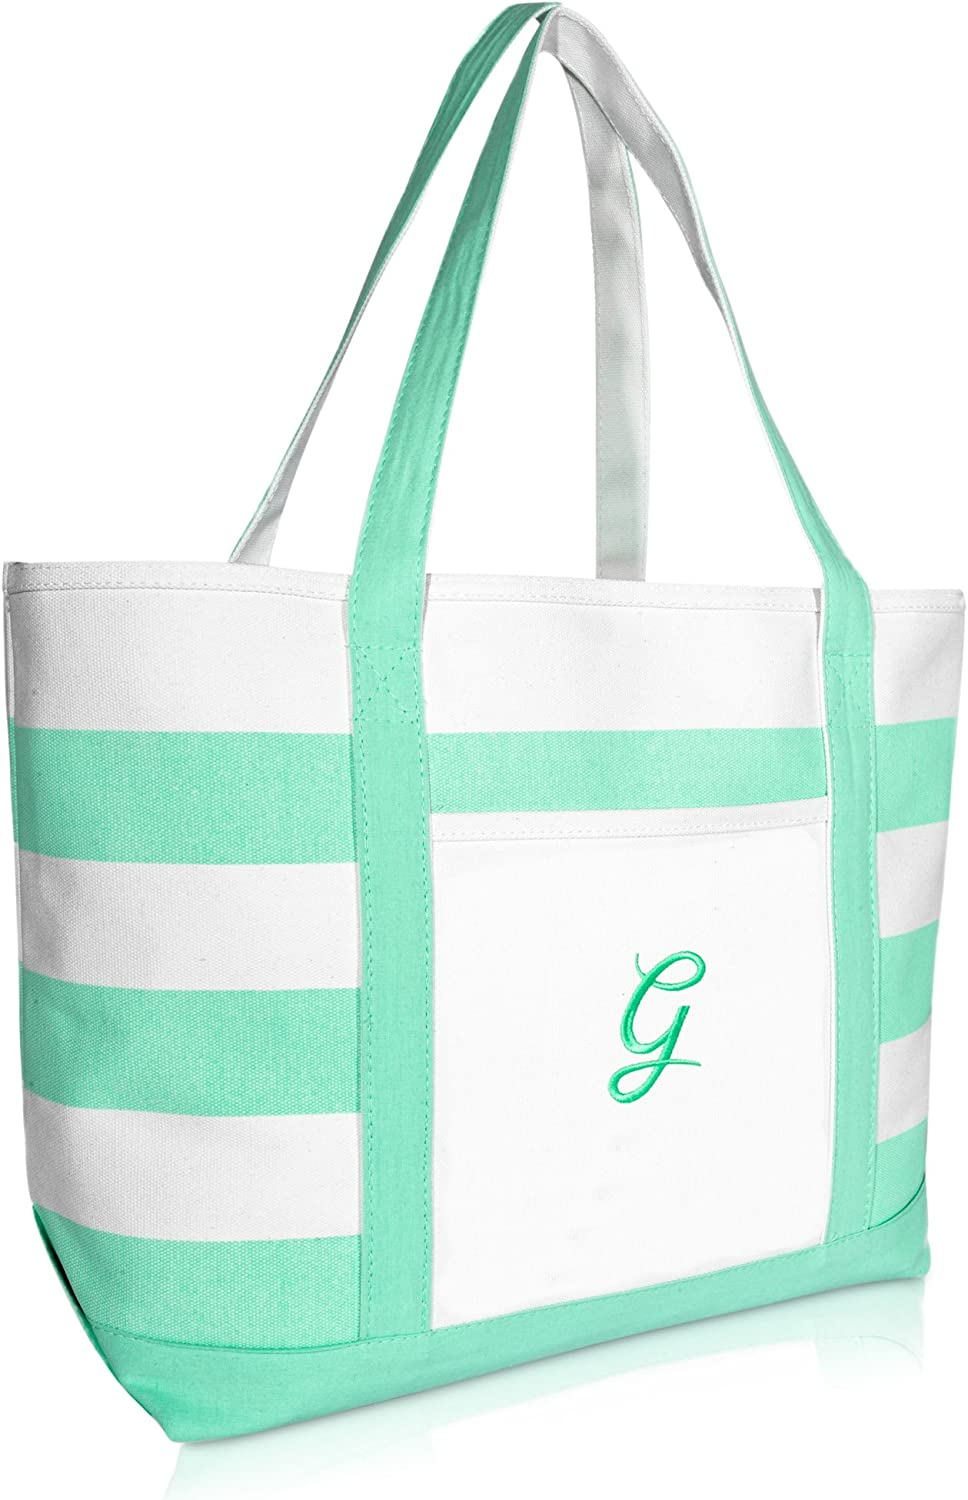 DALIX Monogram safety Beach Bag and Gifts Special Campaign Totes Women Personalized for